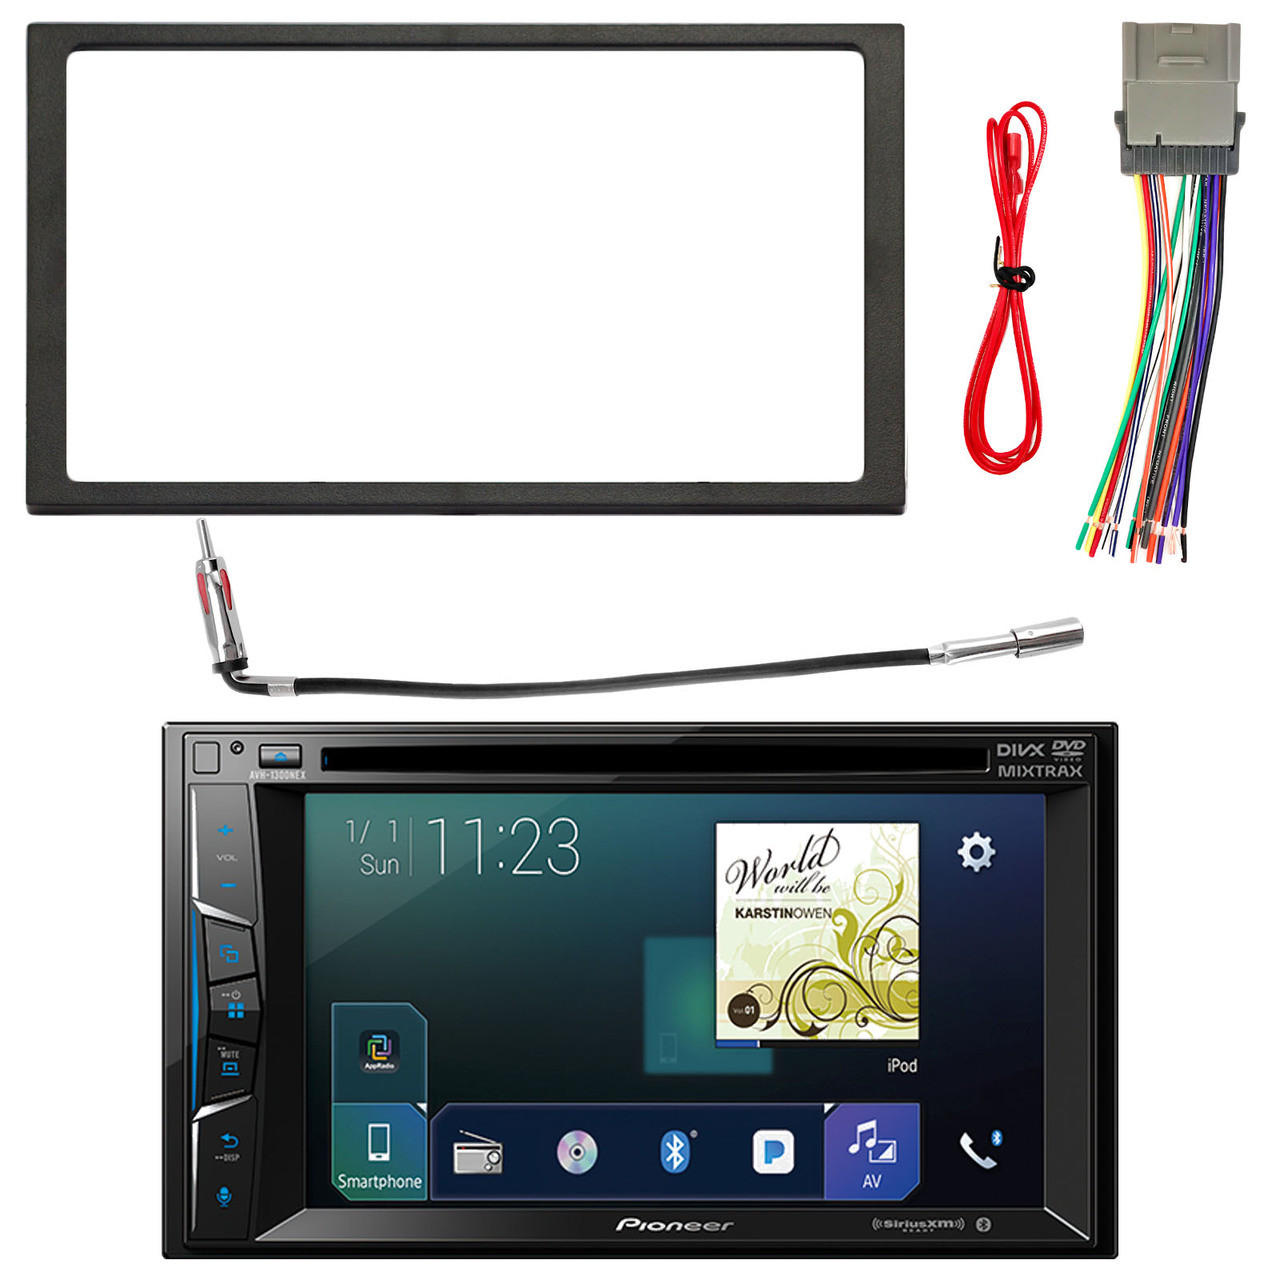 small resolution of pioneer 6 2 bluetooth siriusxm ready dvd receiver enrock double din install dash kit enrock stereo wiring harness enrock antenna adapter select